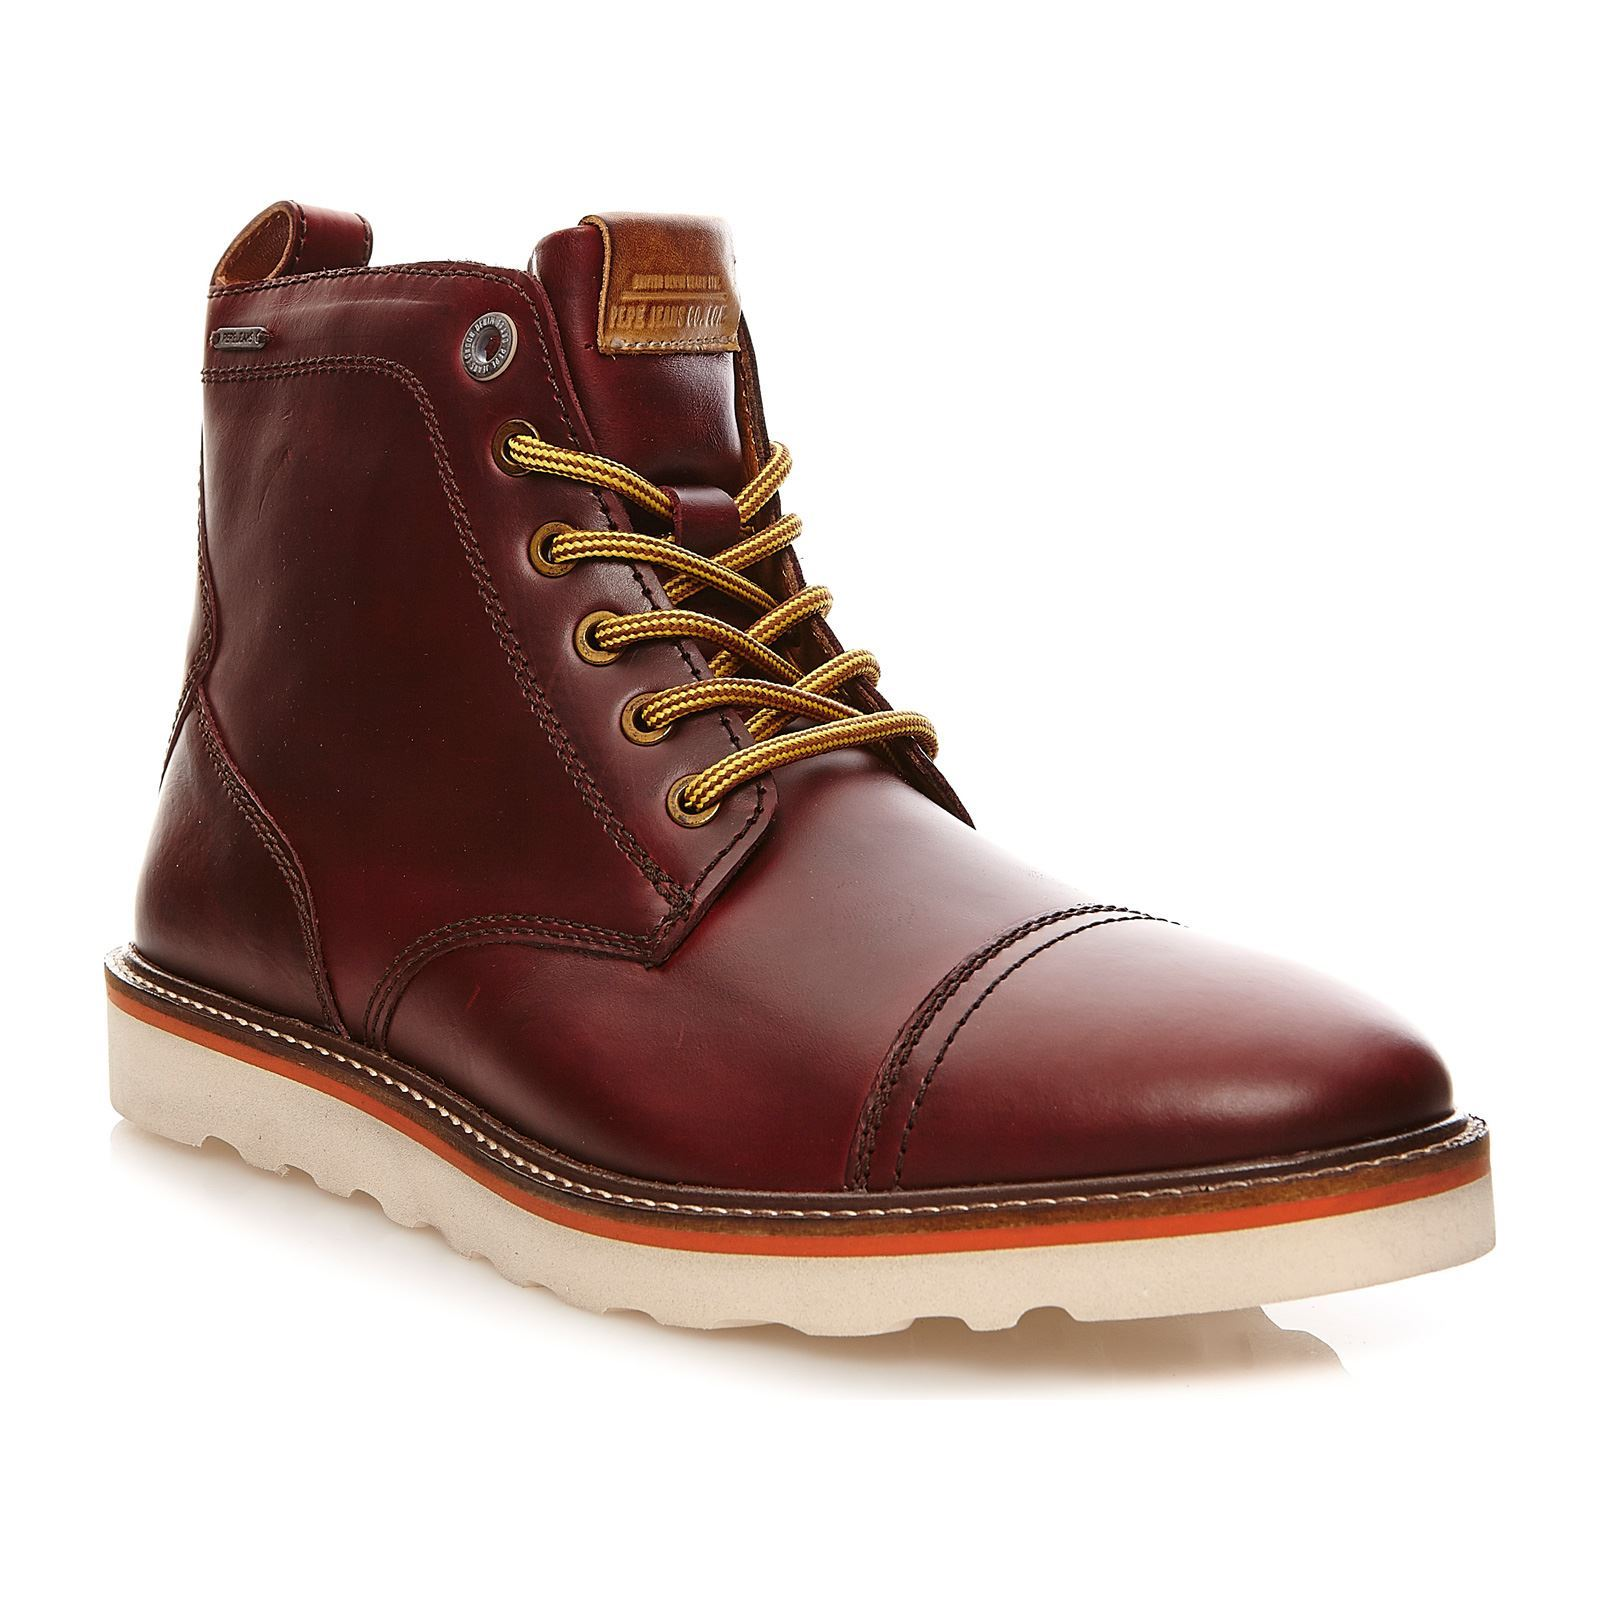 Pepe Jeans Footwear Barley Boot Lth - Boots - bordeaux